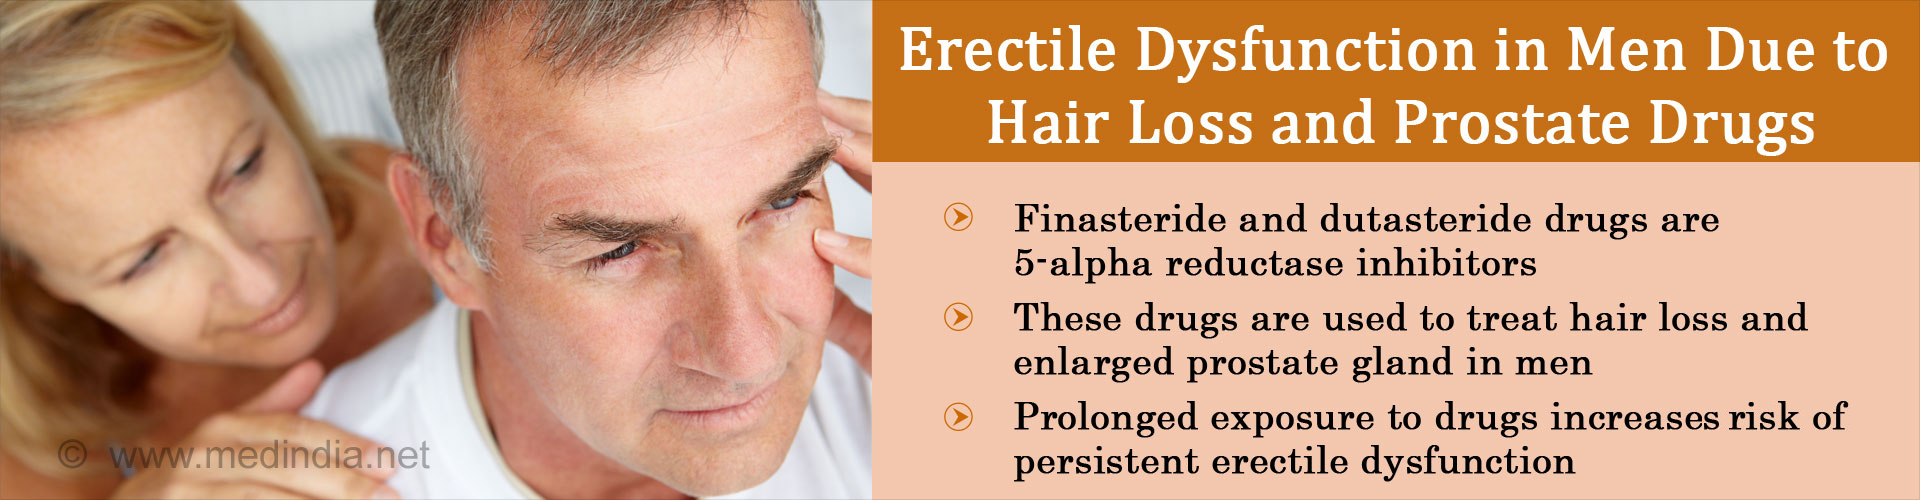 Hair Loss, Prostate Drugs Could Increase Persistent Erectile Dysfunction Risk in Men